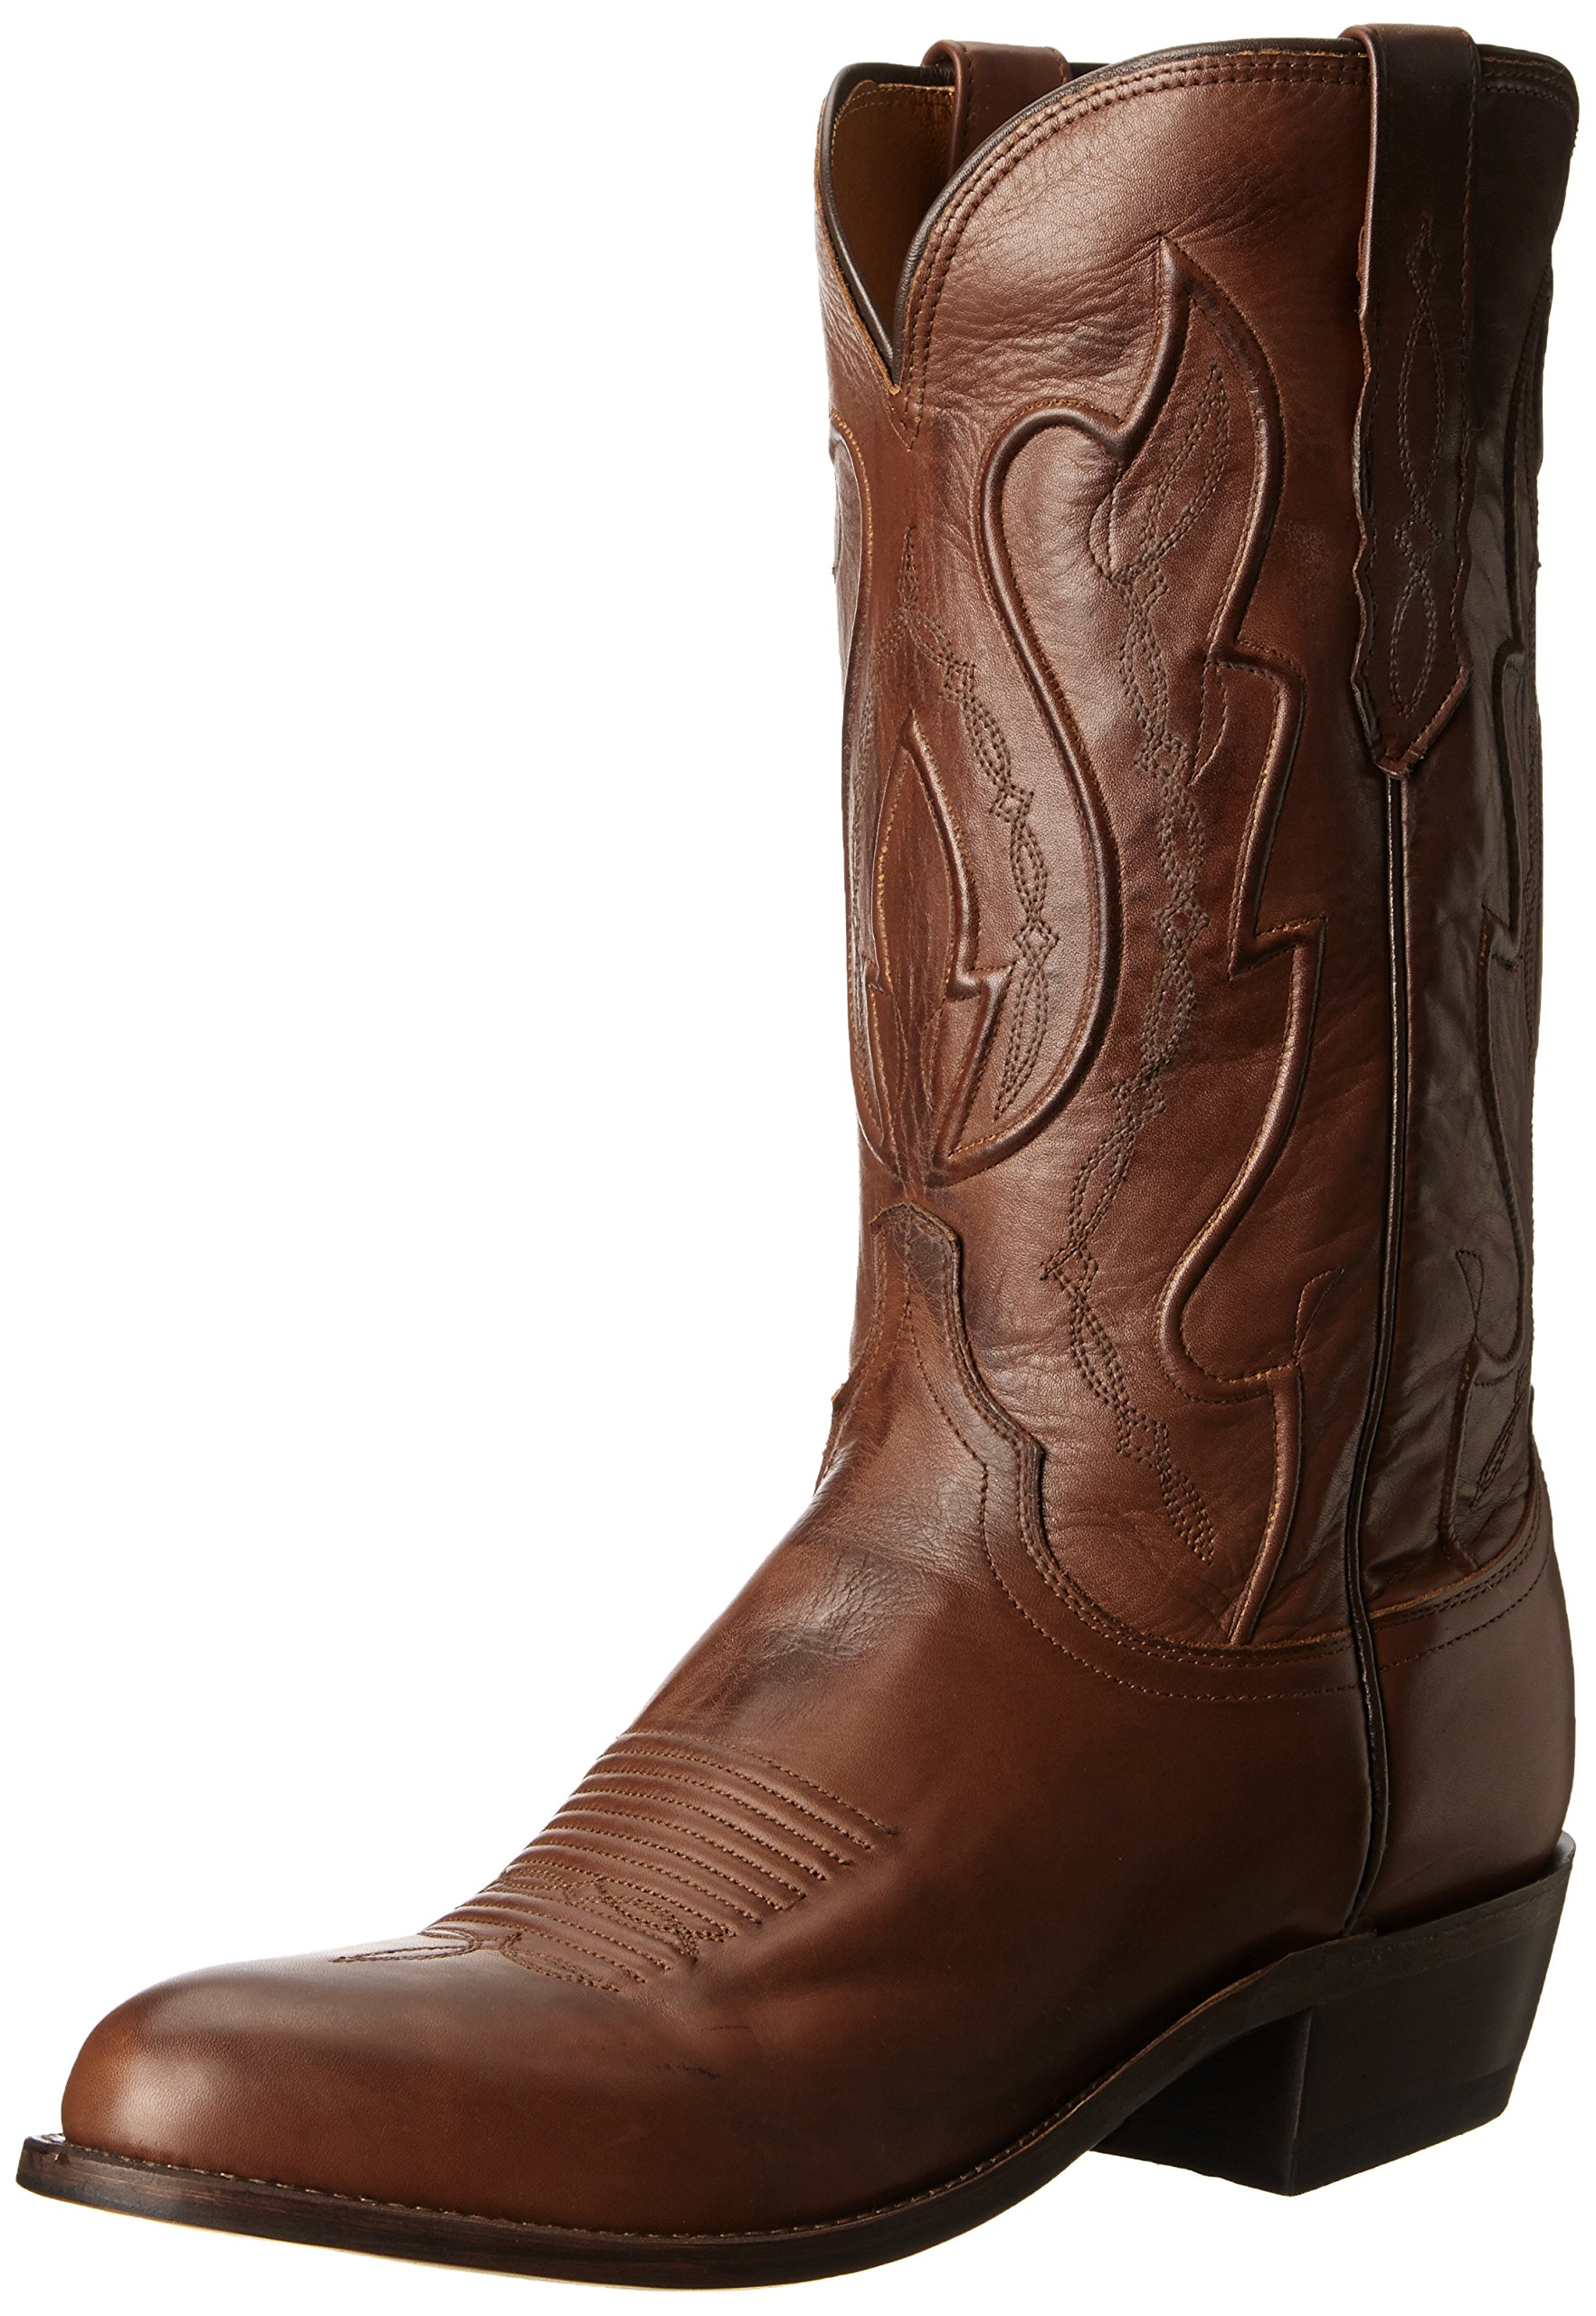 Lucchese Bootmaker Men's Cole-TN RNCH Hand Riding Boot, Tan Ranch, 12 D US